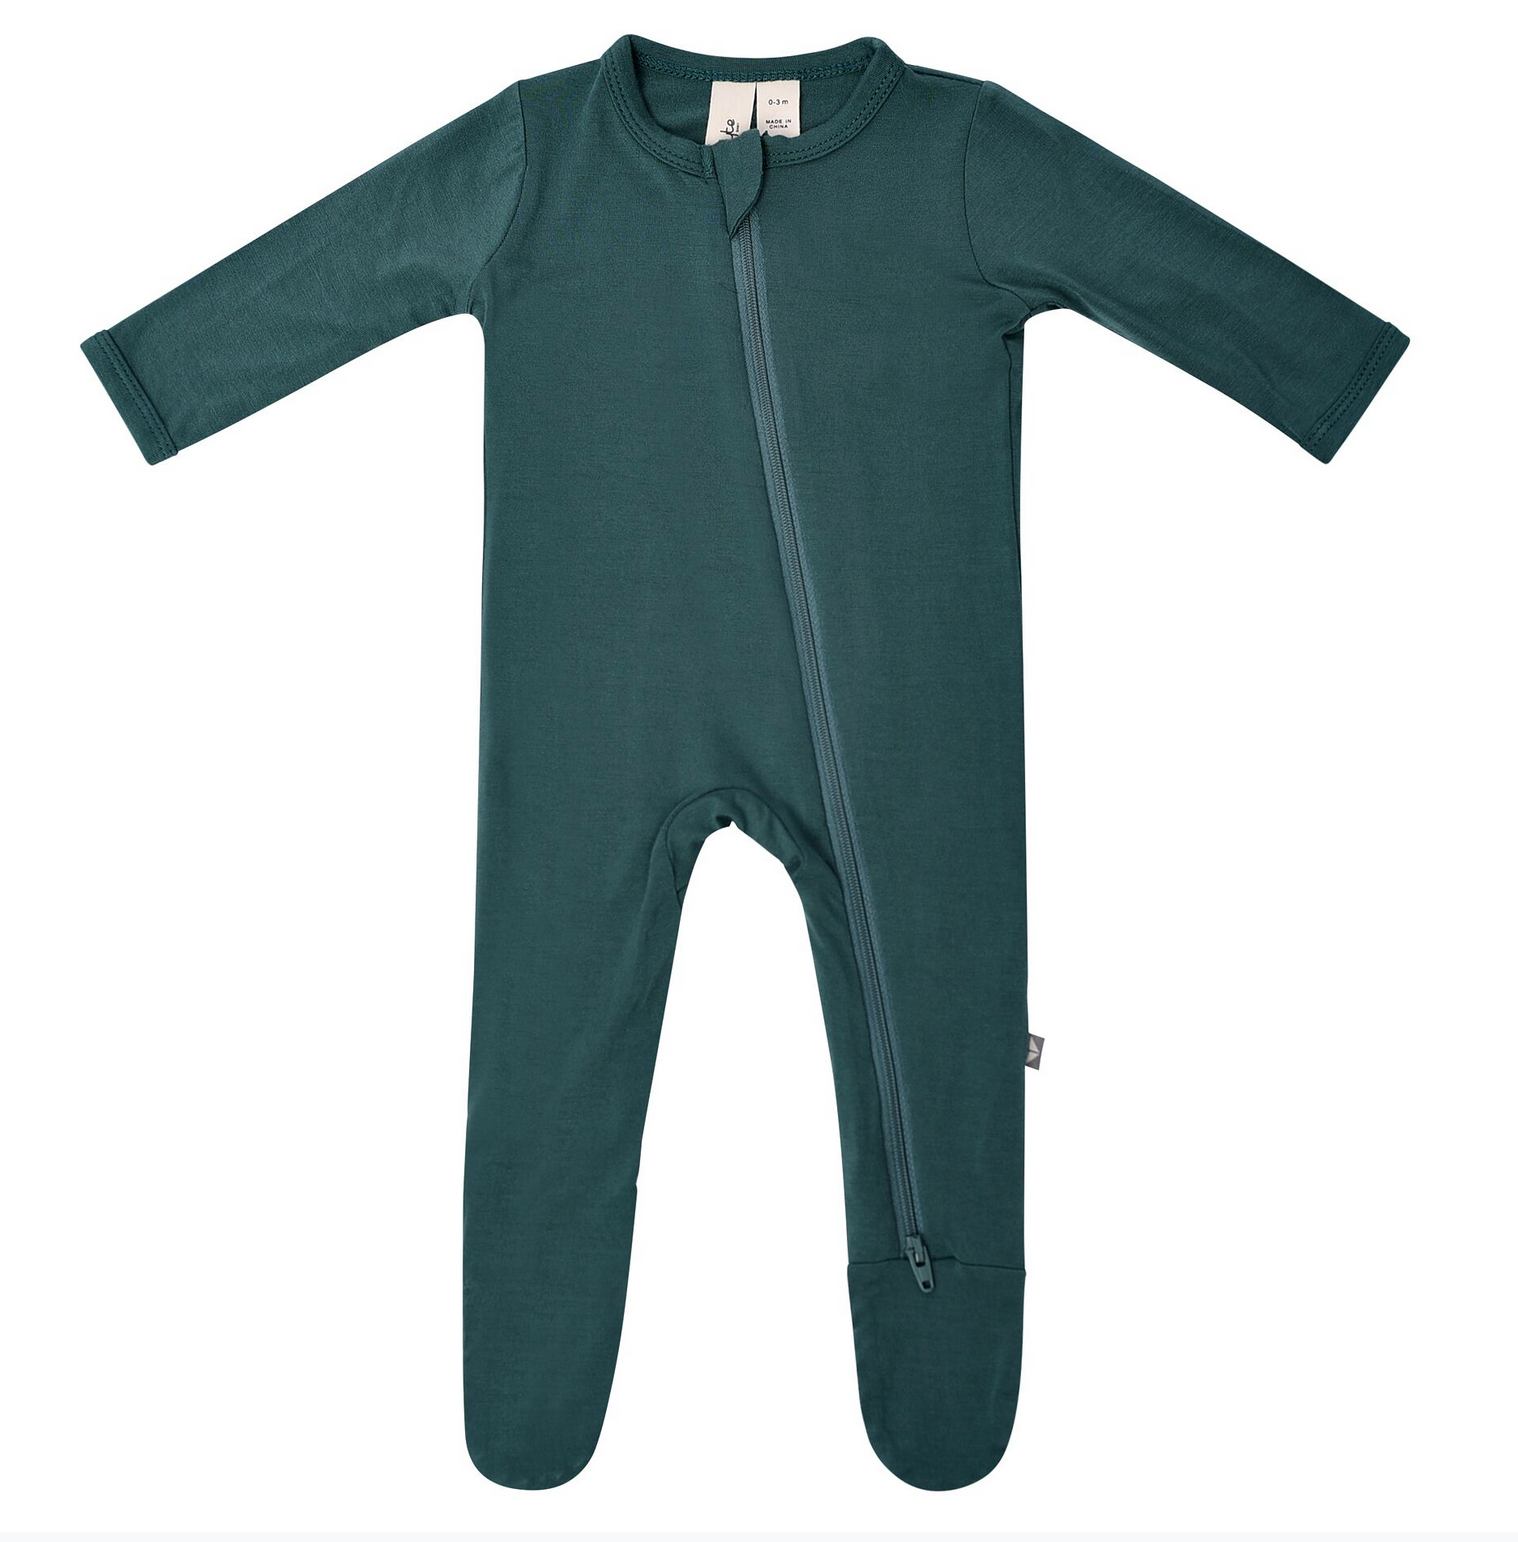 Zippered Footie in Emerald